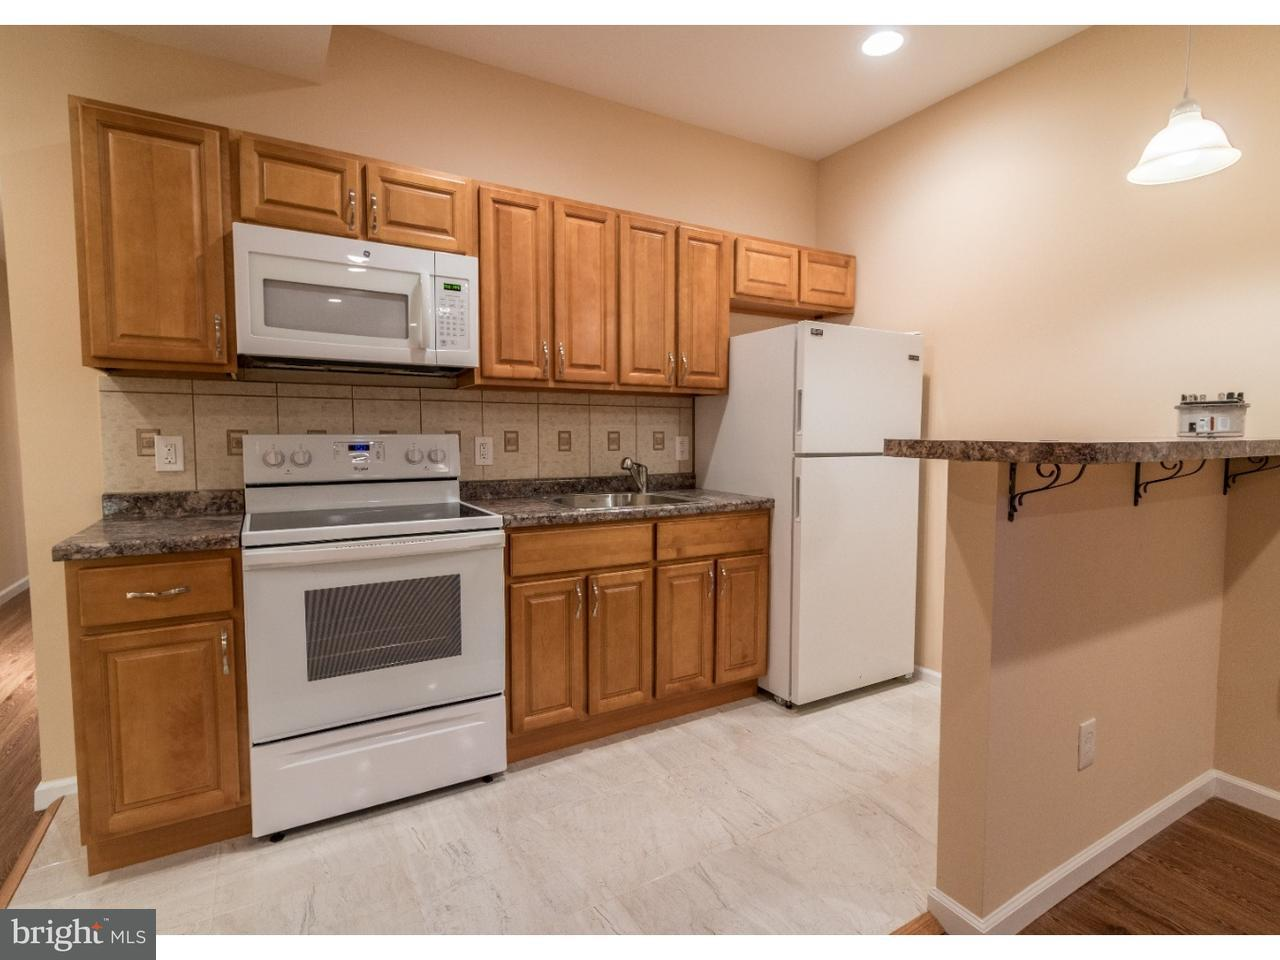 Townhouse for Rent at 5043 WALNUT ST #1F Philadelphia, Pennsylvania 19139 United States